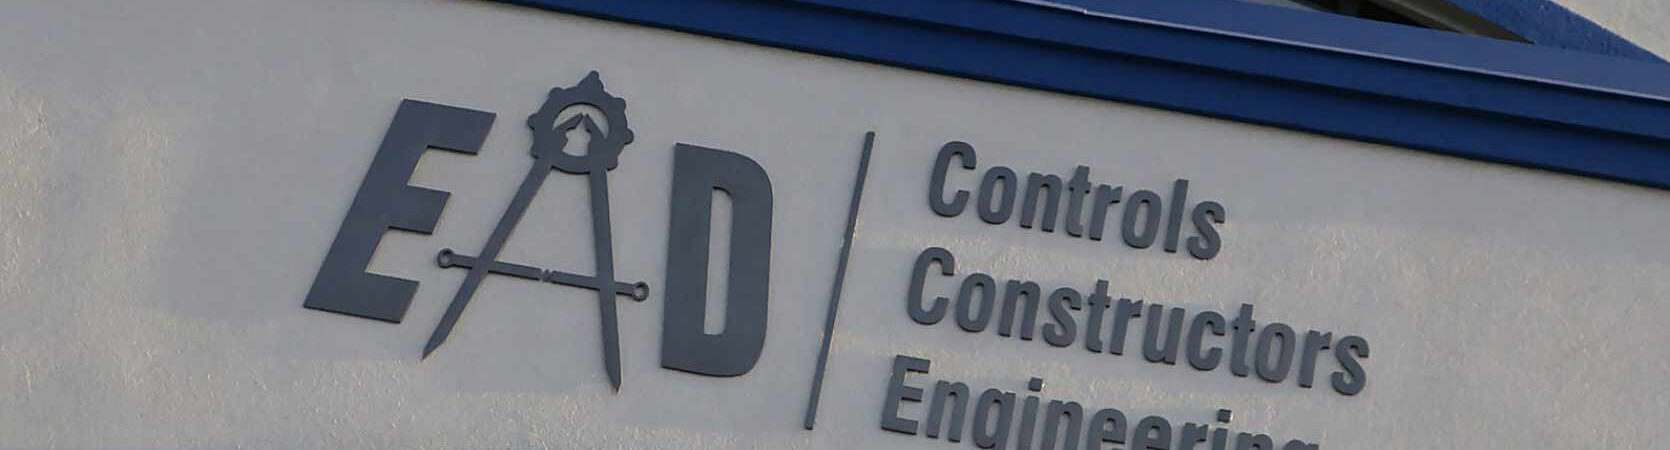 Engineering, Automation, Design logo and front office sign